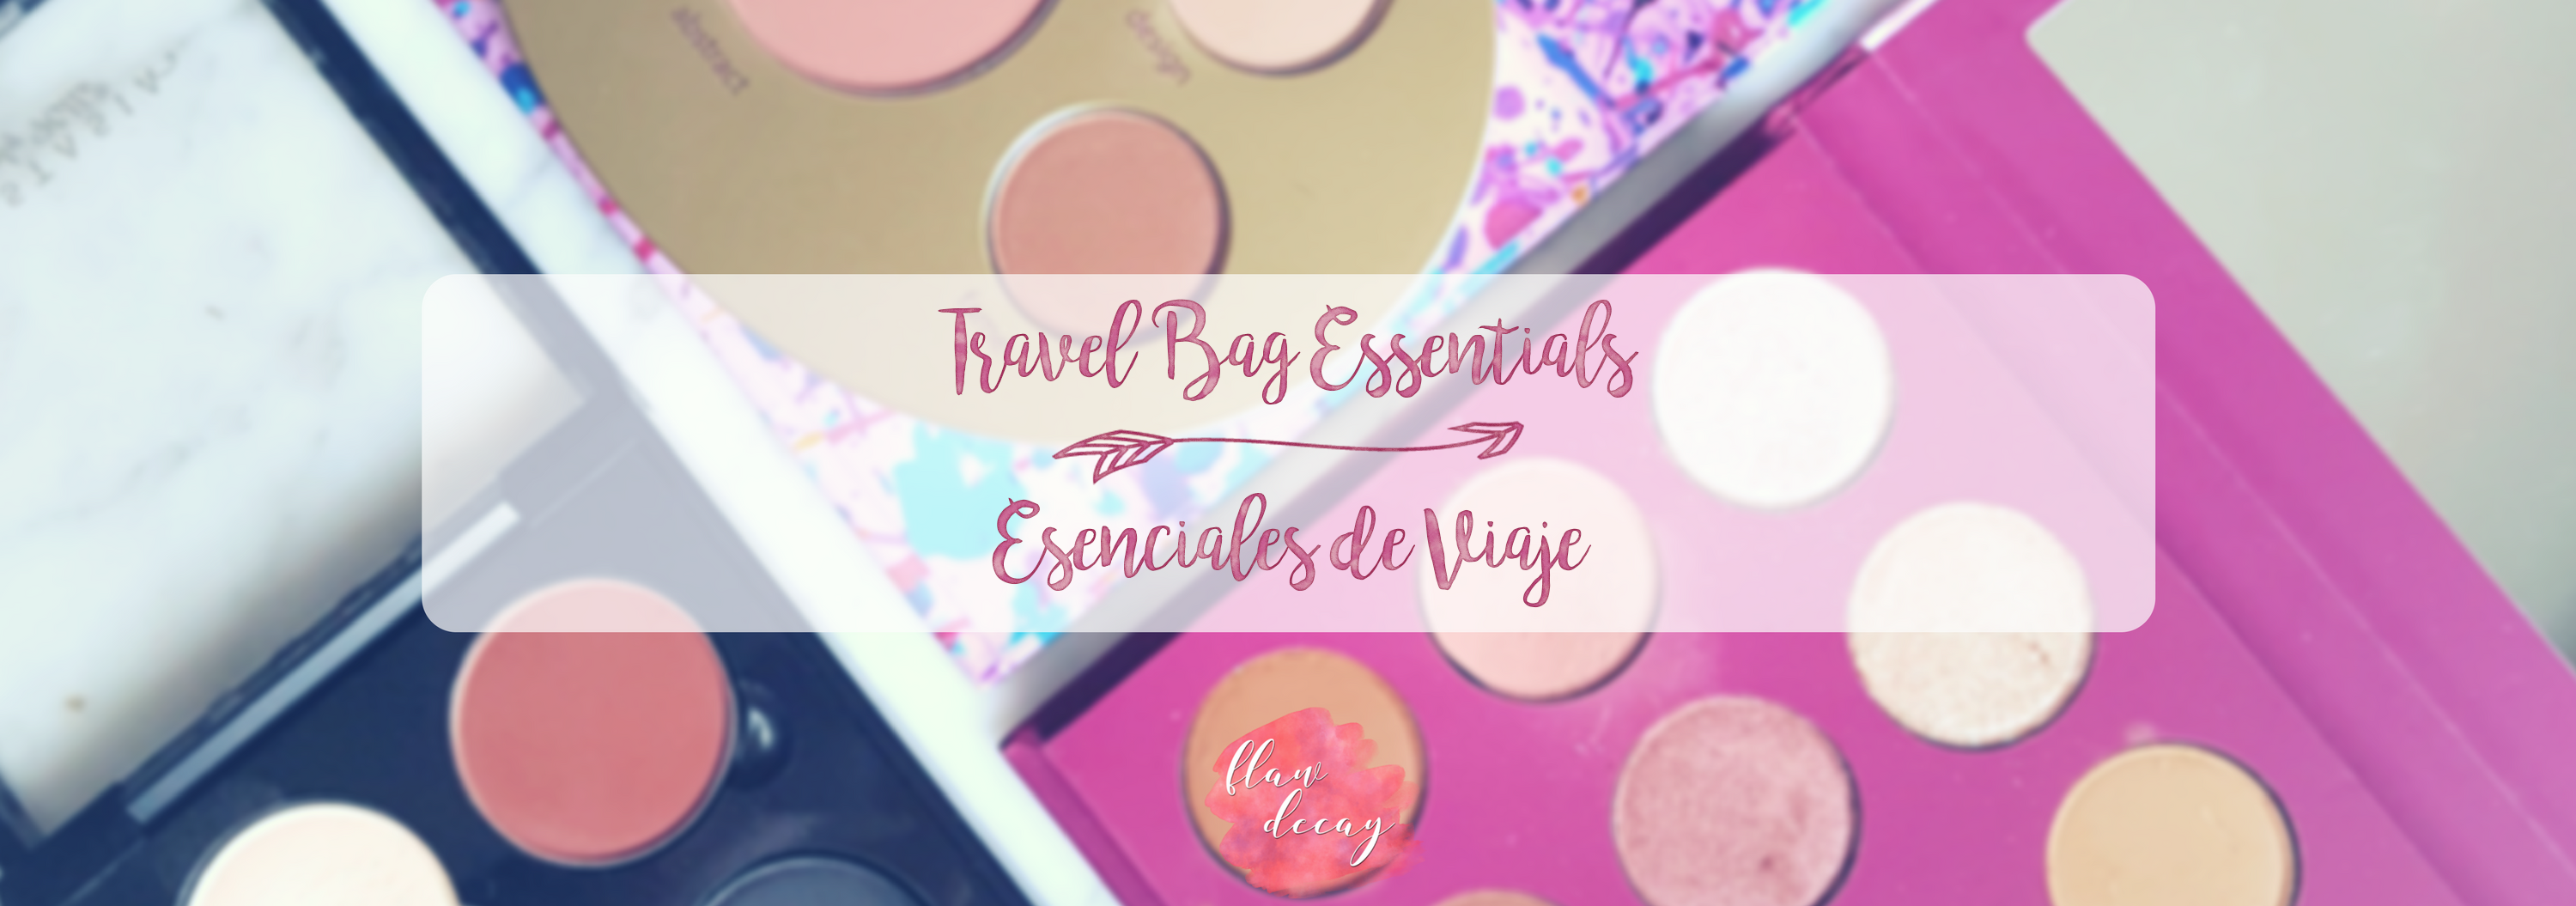 Travel Bag Essentials | Esenciales de Viaje